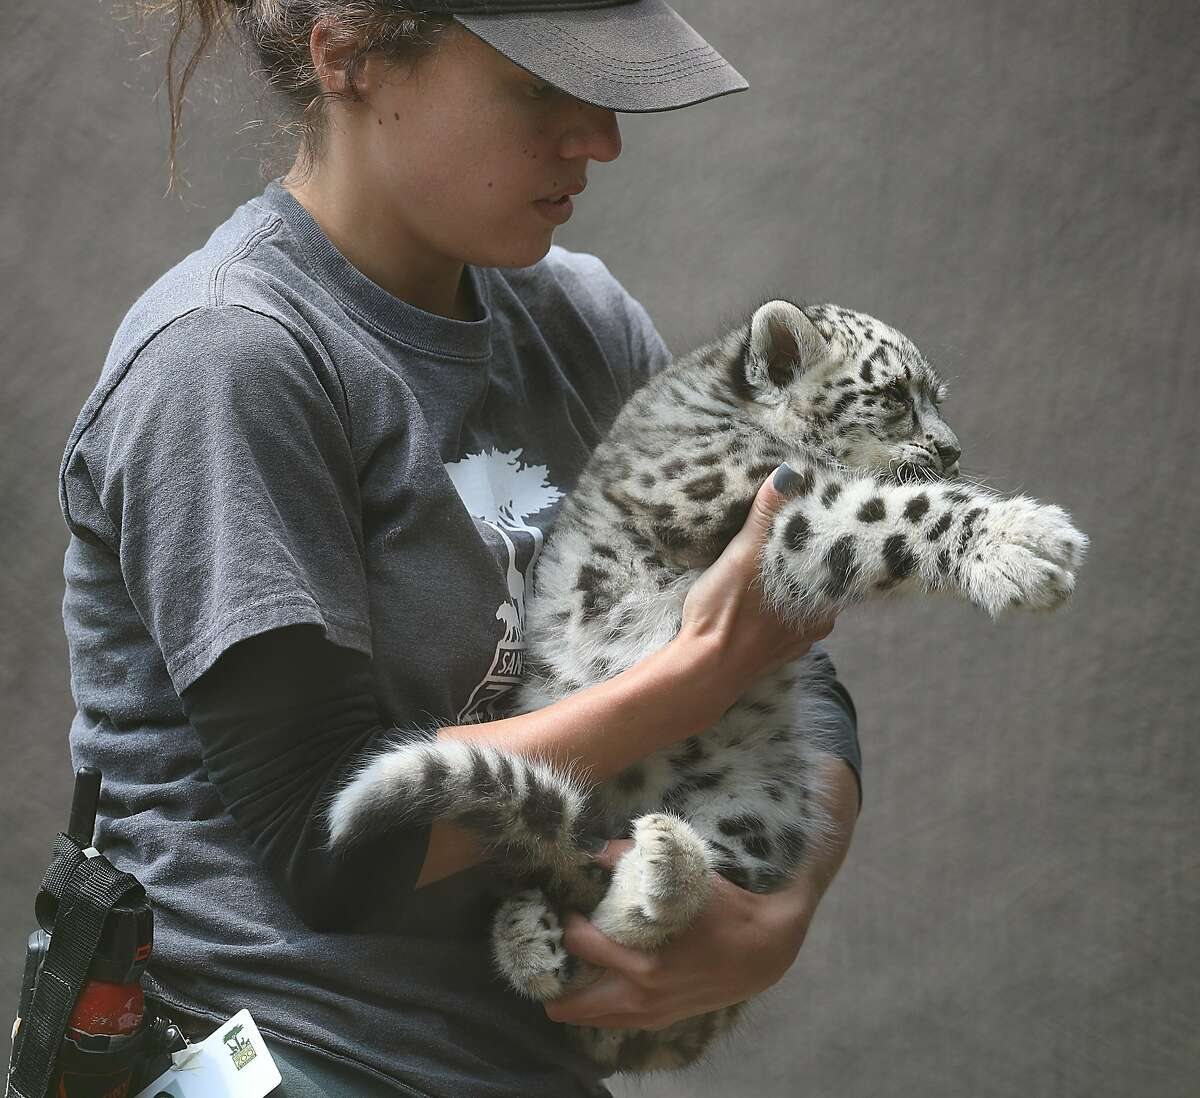 The San Francisco Zoo show one of two snow leopard cubs on Thursday, Aug. 9, 2018 in San Francisco, Calif.